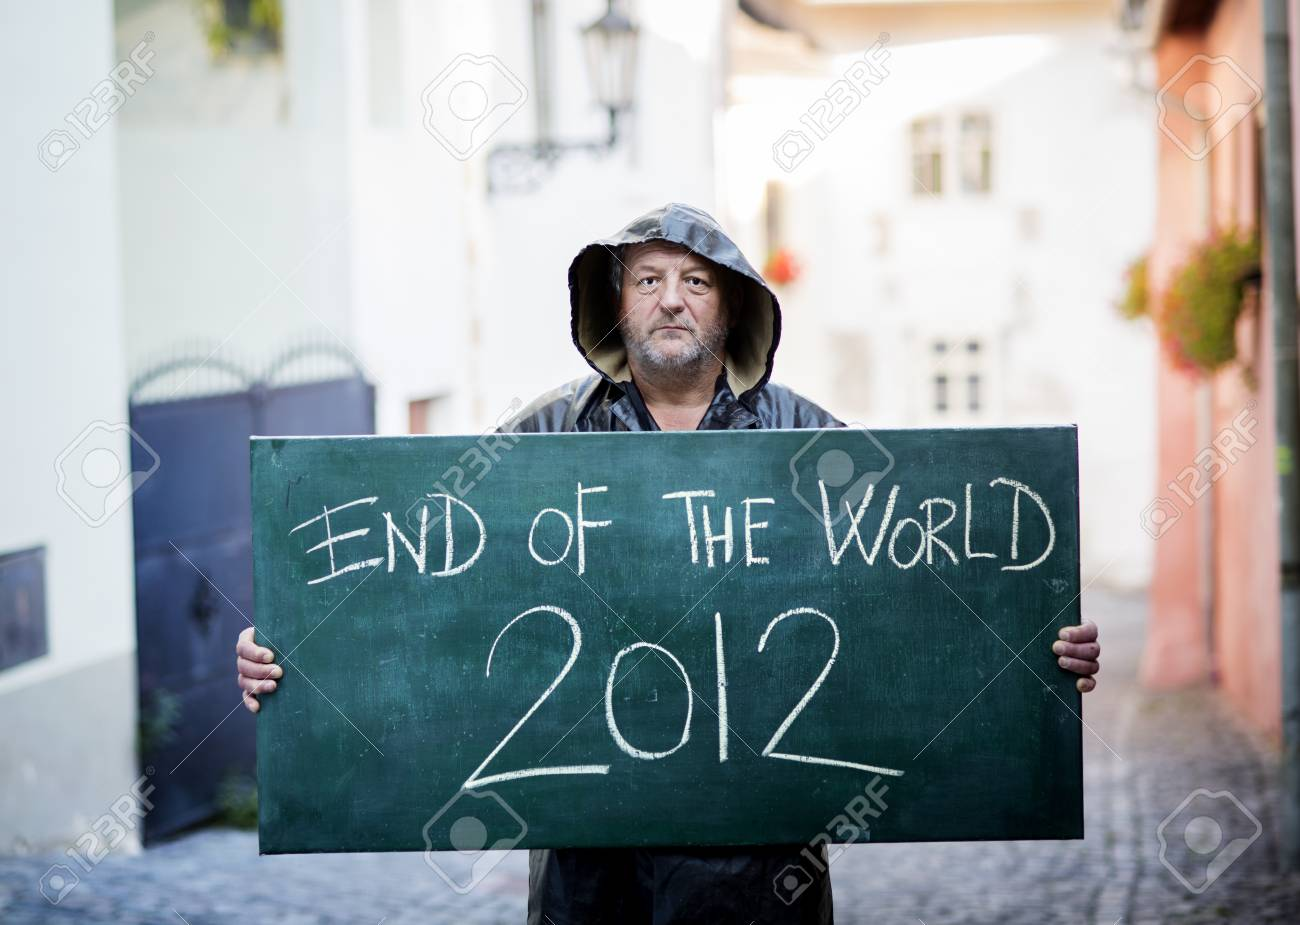 End of the world Stock Photo - 16334606